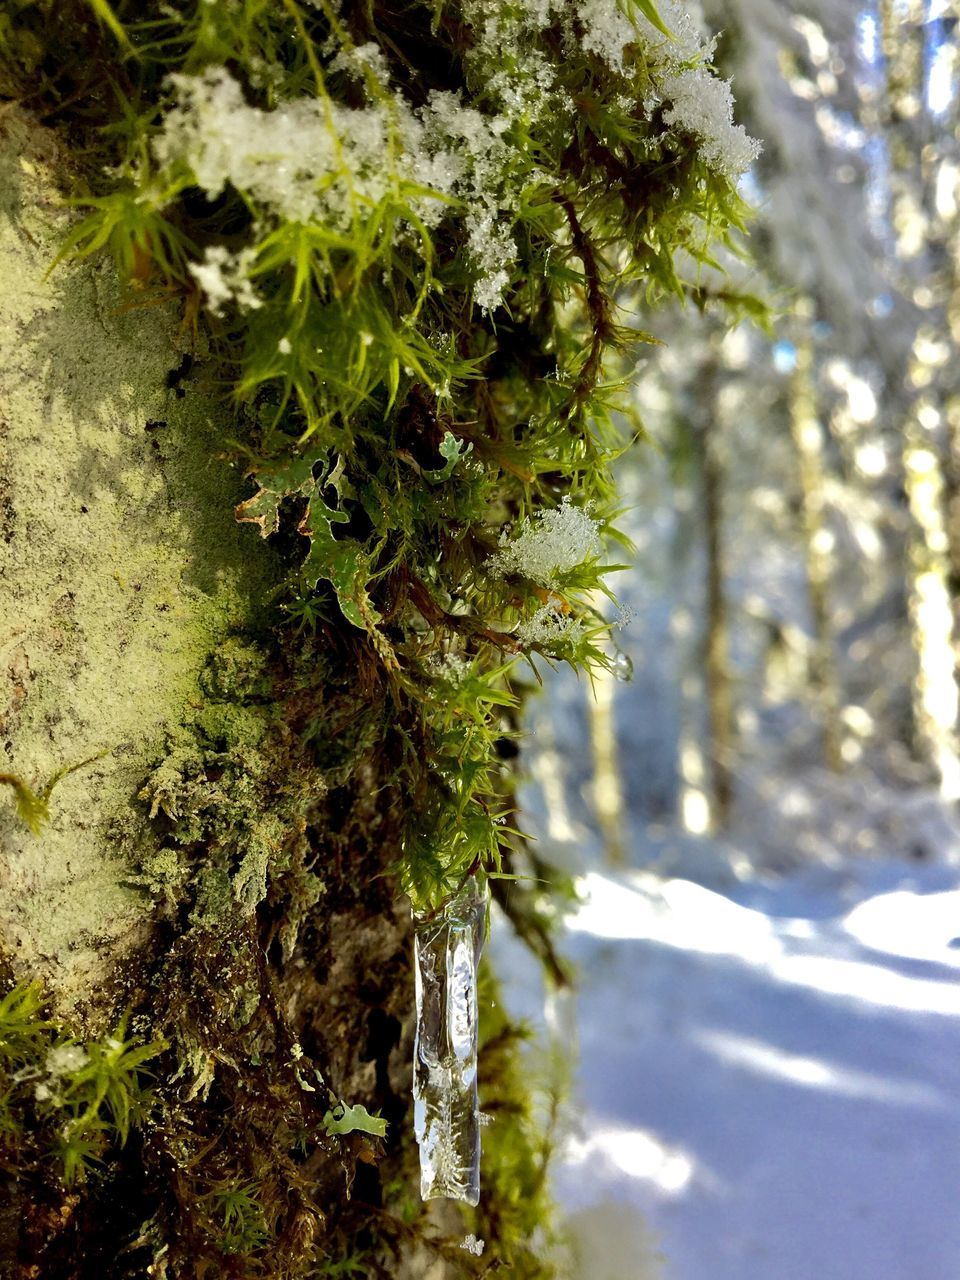 growth, nature, tree, plant, green color, no people, tree trunk, day, focus on foreground, beauty in nature, outdoors, close-up, tranquility, fern